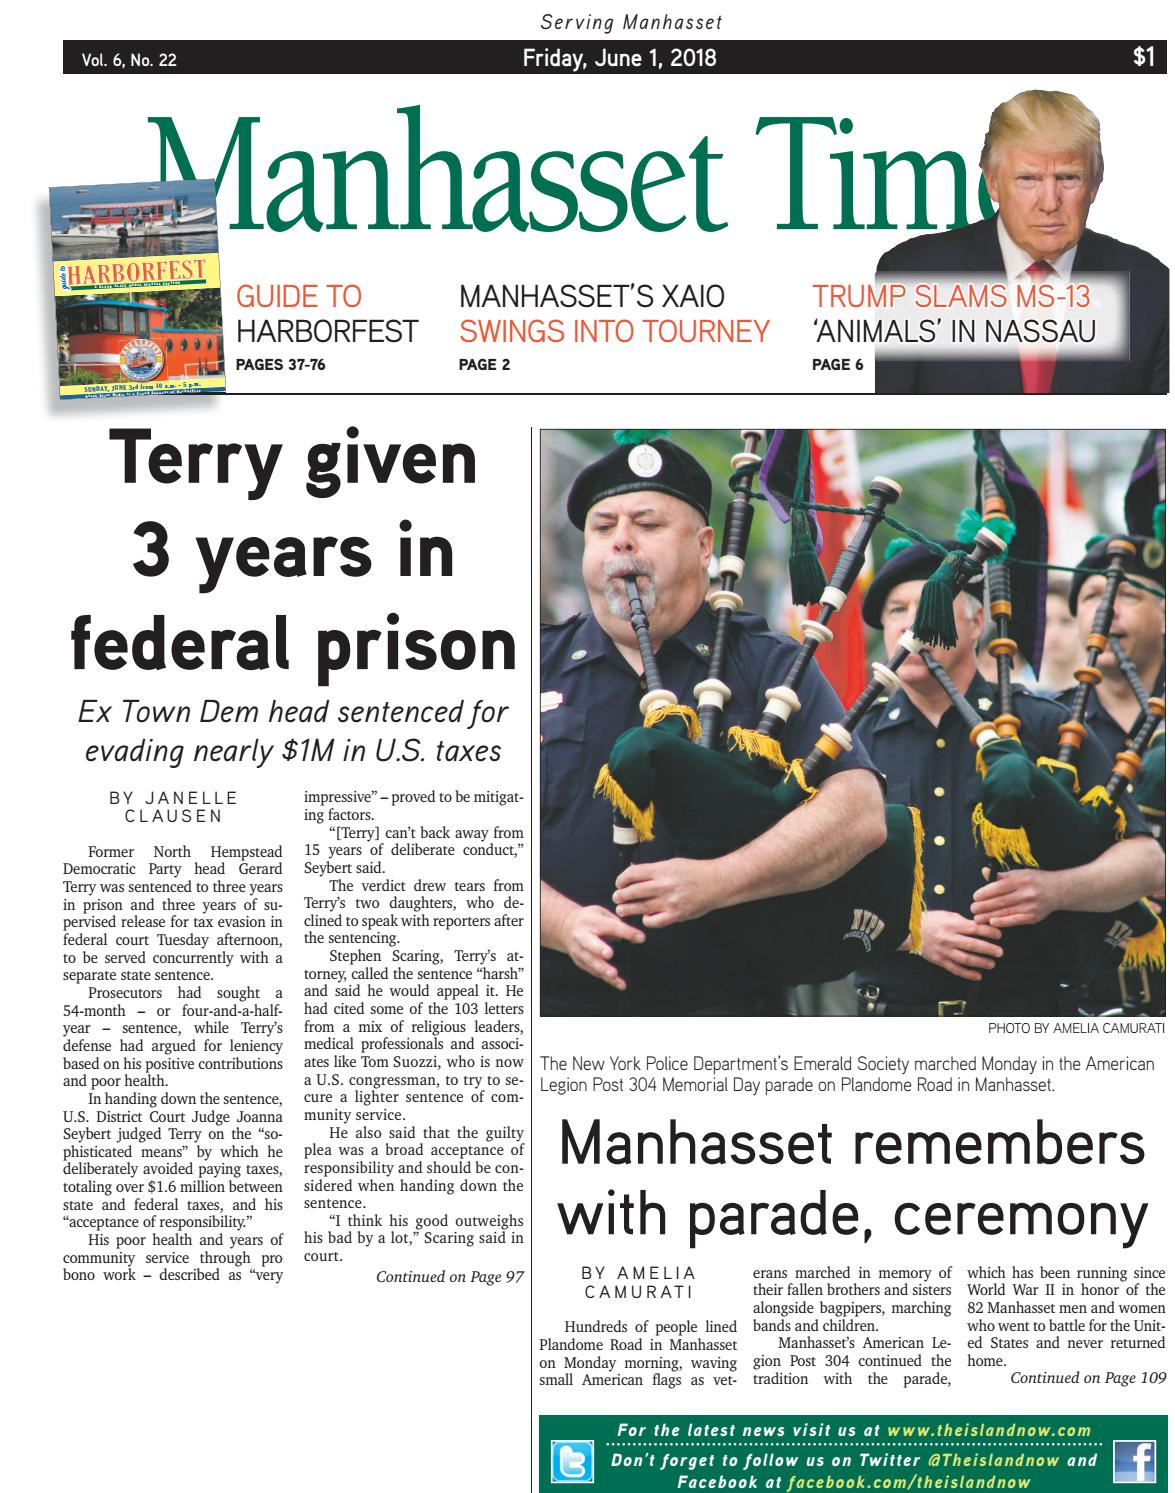 Manhasset Times 2018 06 01 by The Island Now - issuu 9002421ea8f